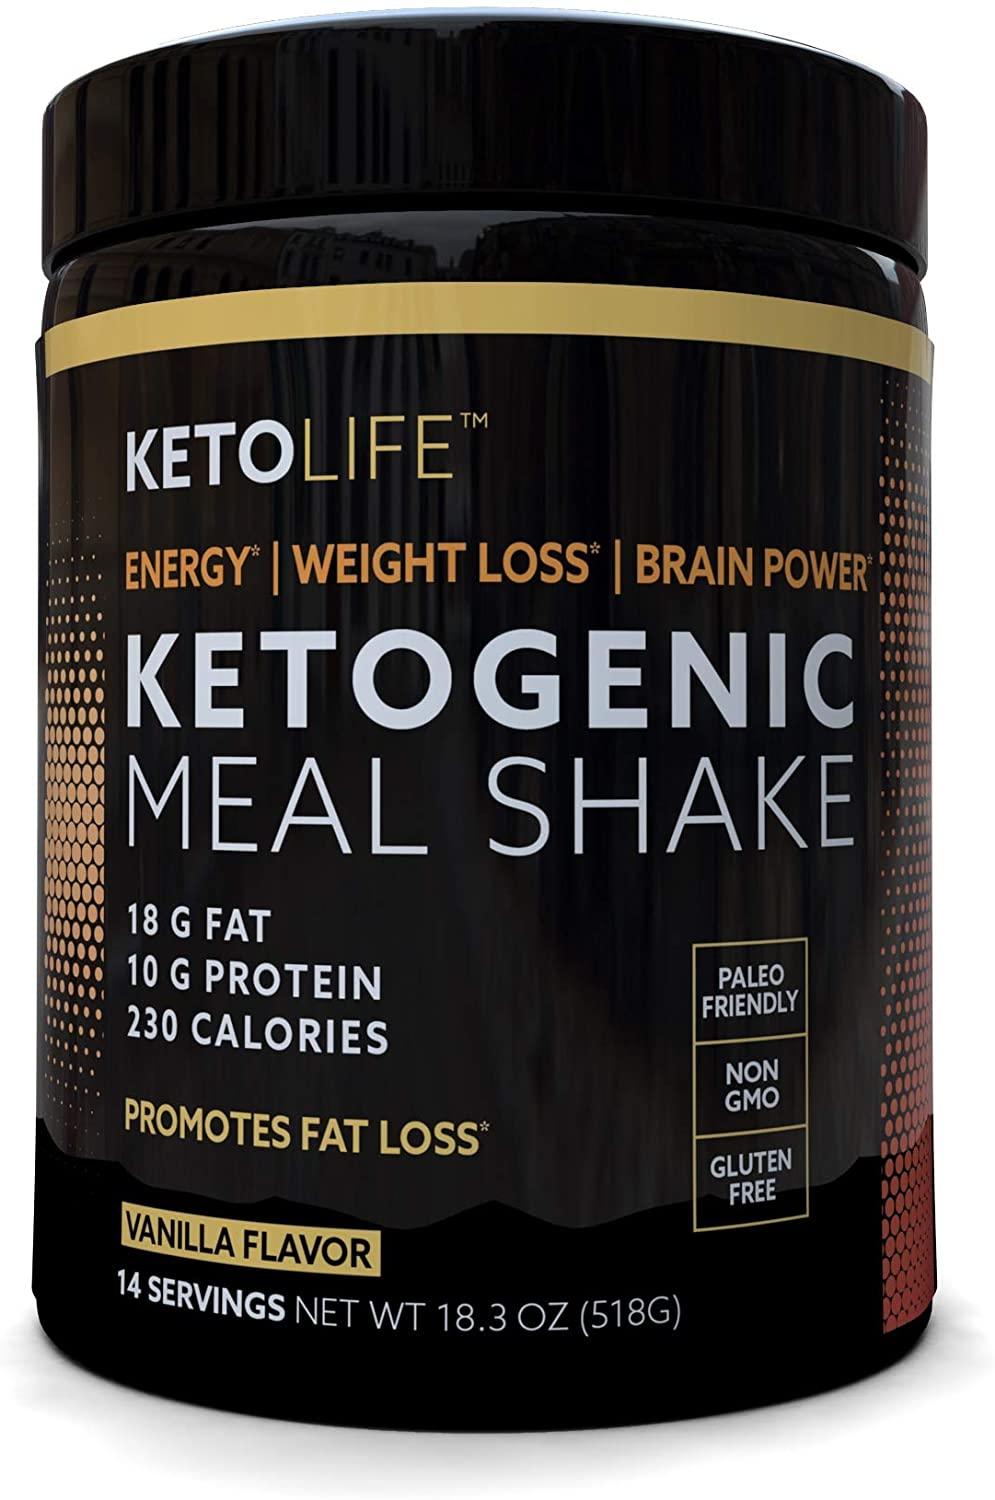 KetoLife Ketogenic Meal Shake Vanilla Dietary Supplement, Rich in MCTs and Protein, Keto and Paleo Friendly, Weight Loss, 18.3 oz. (14 servings)